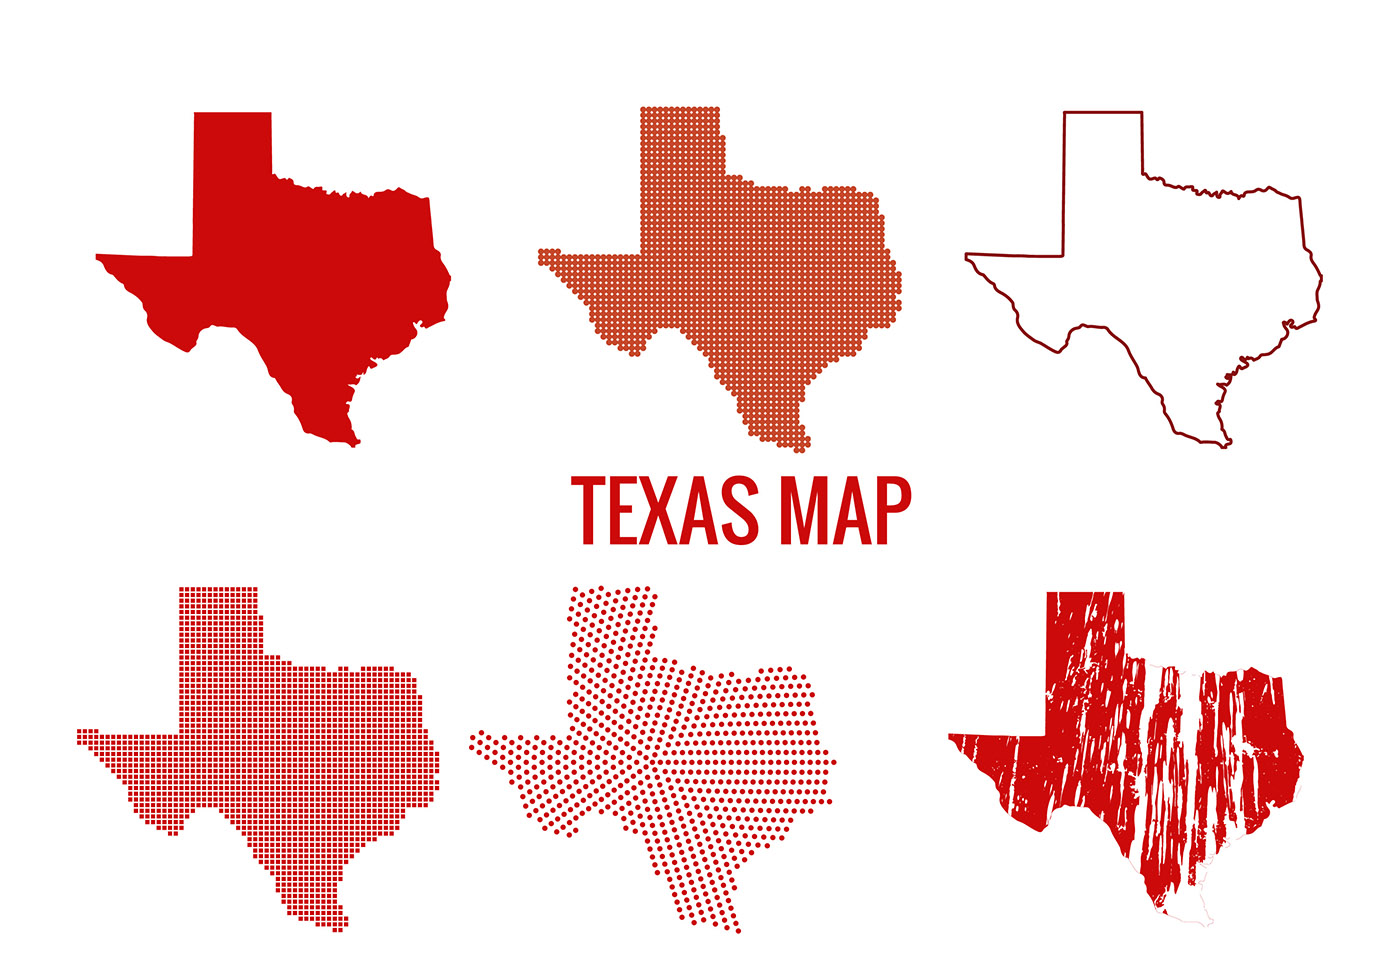 Outline Of Texas Map.Texas Outline Free Vector Art 43227 Free Downloads